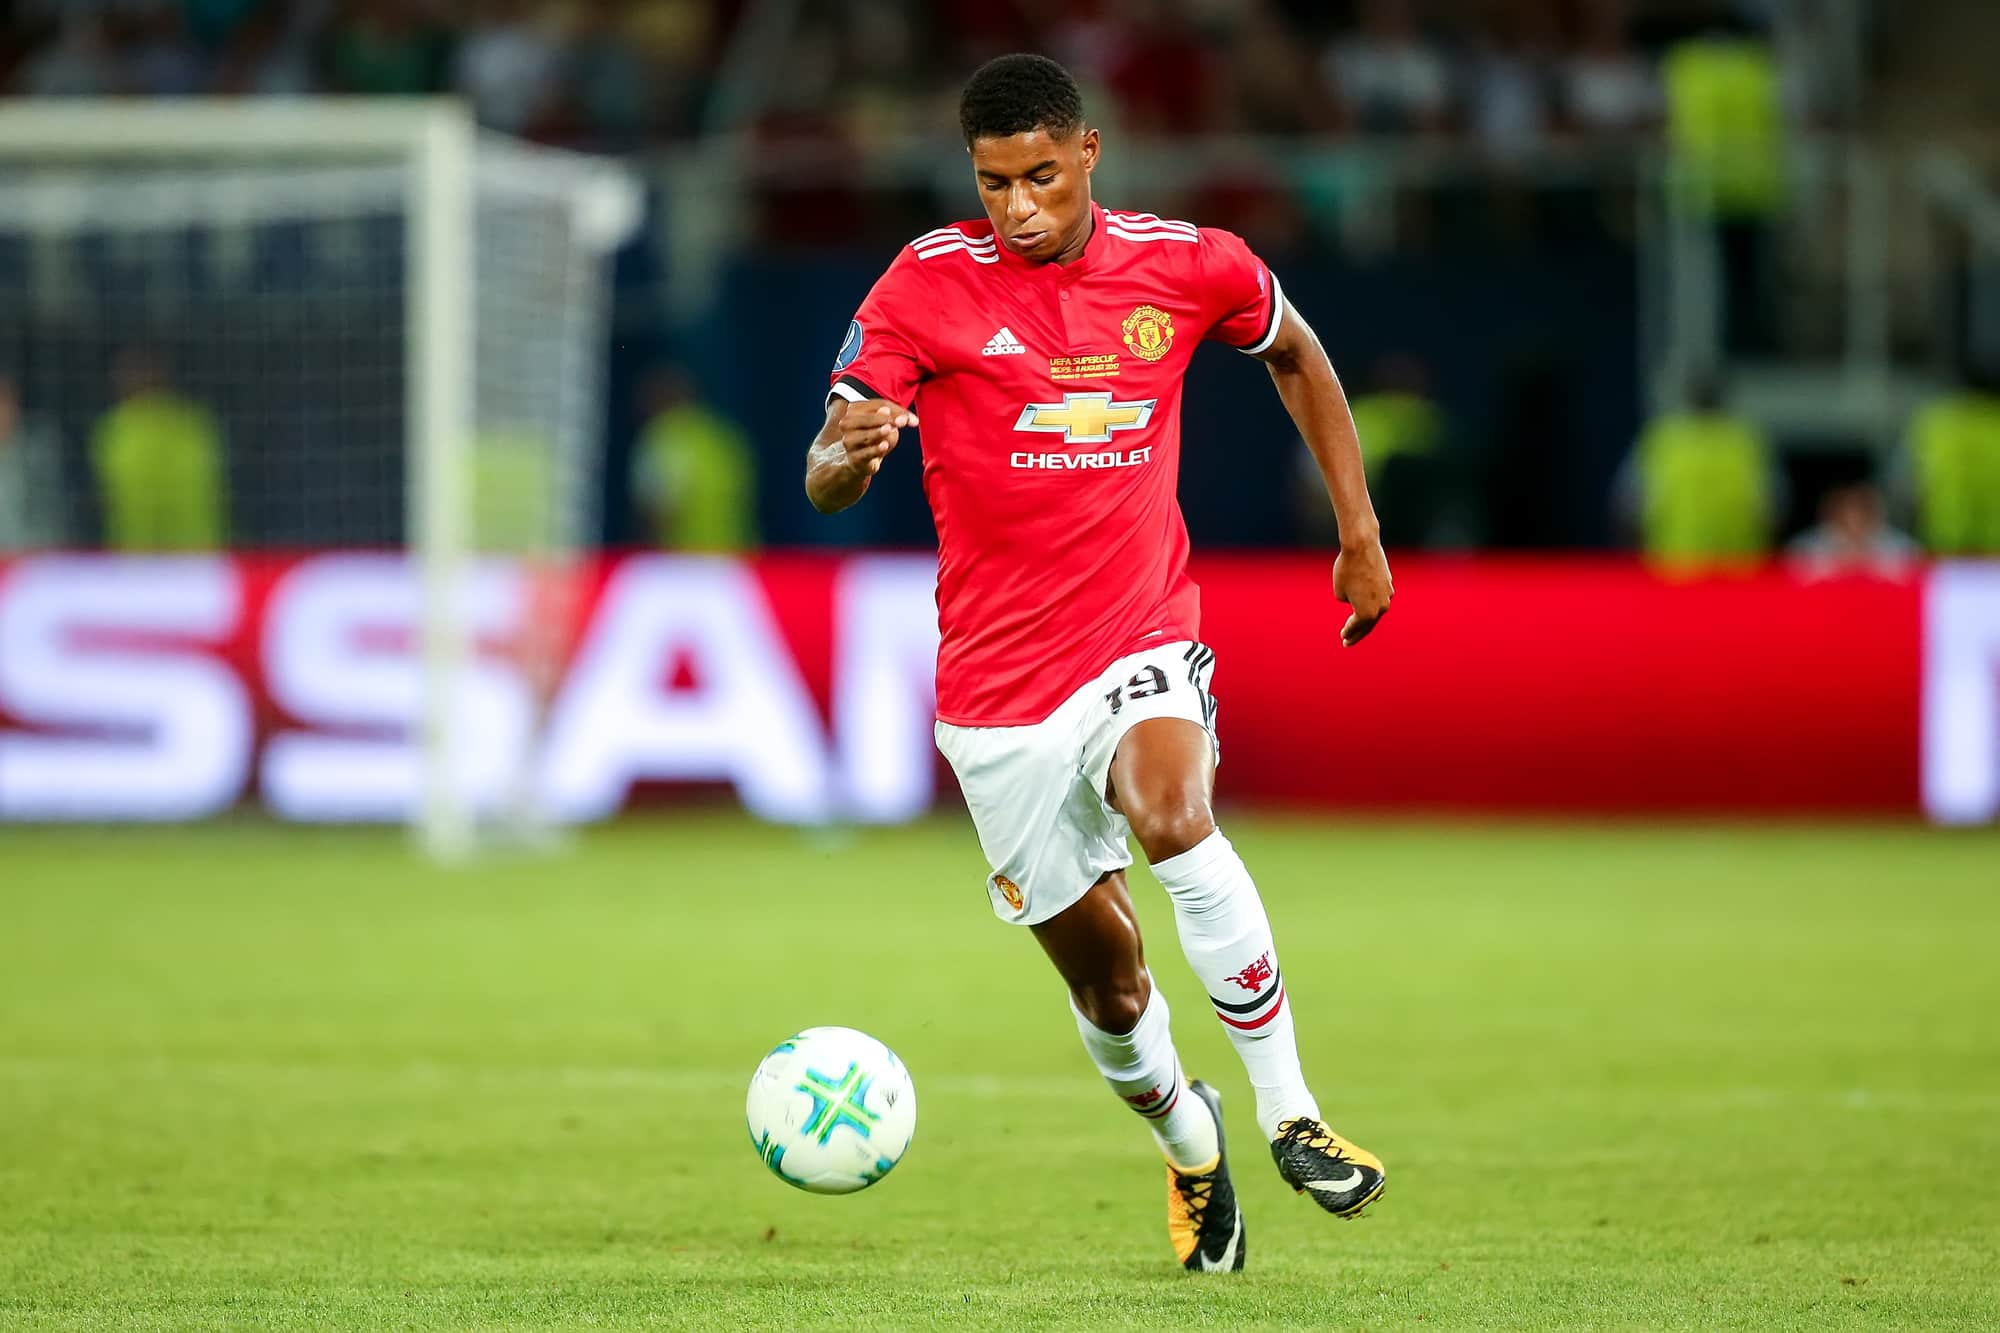 Man of the Match: Marcus Rashford